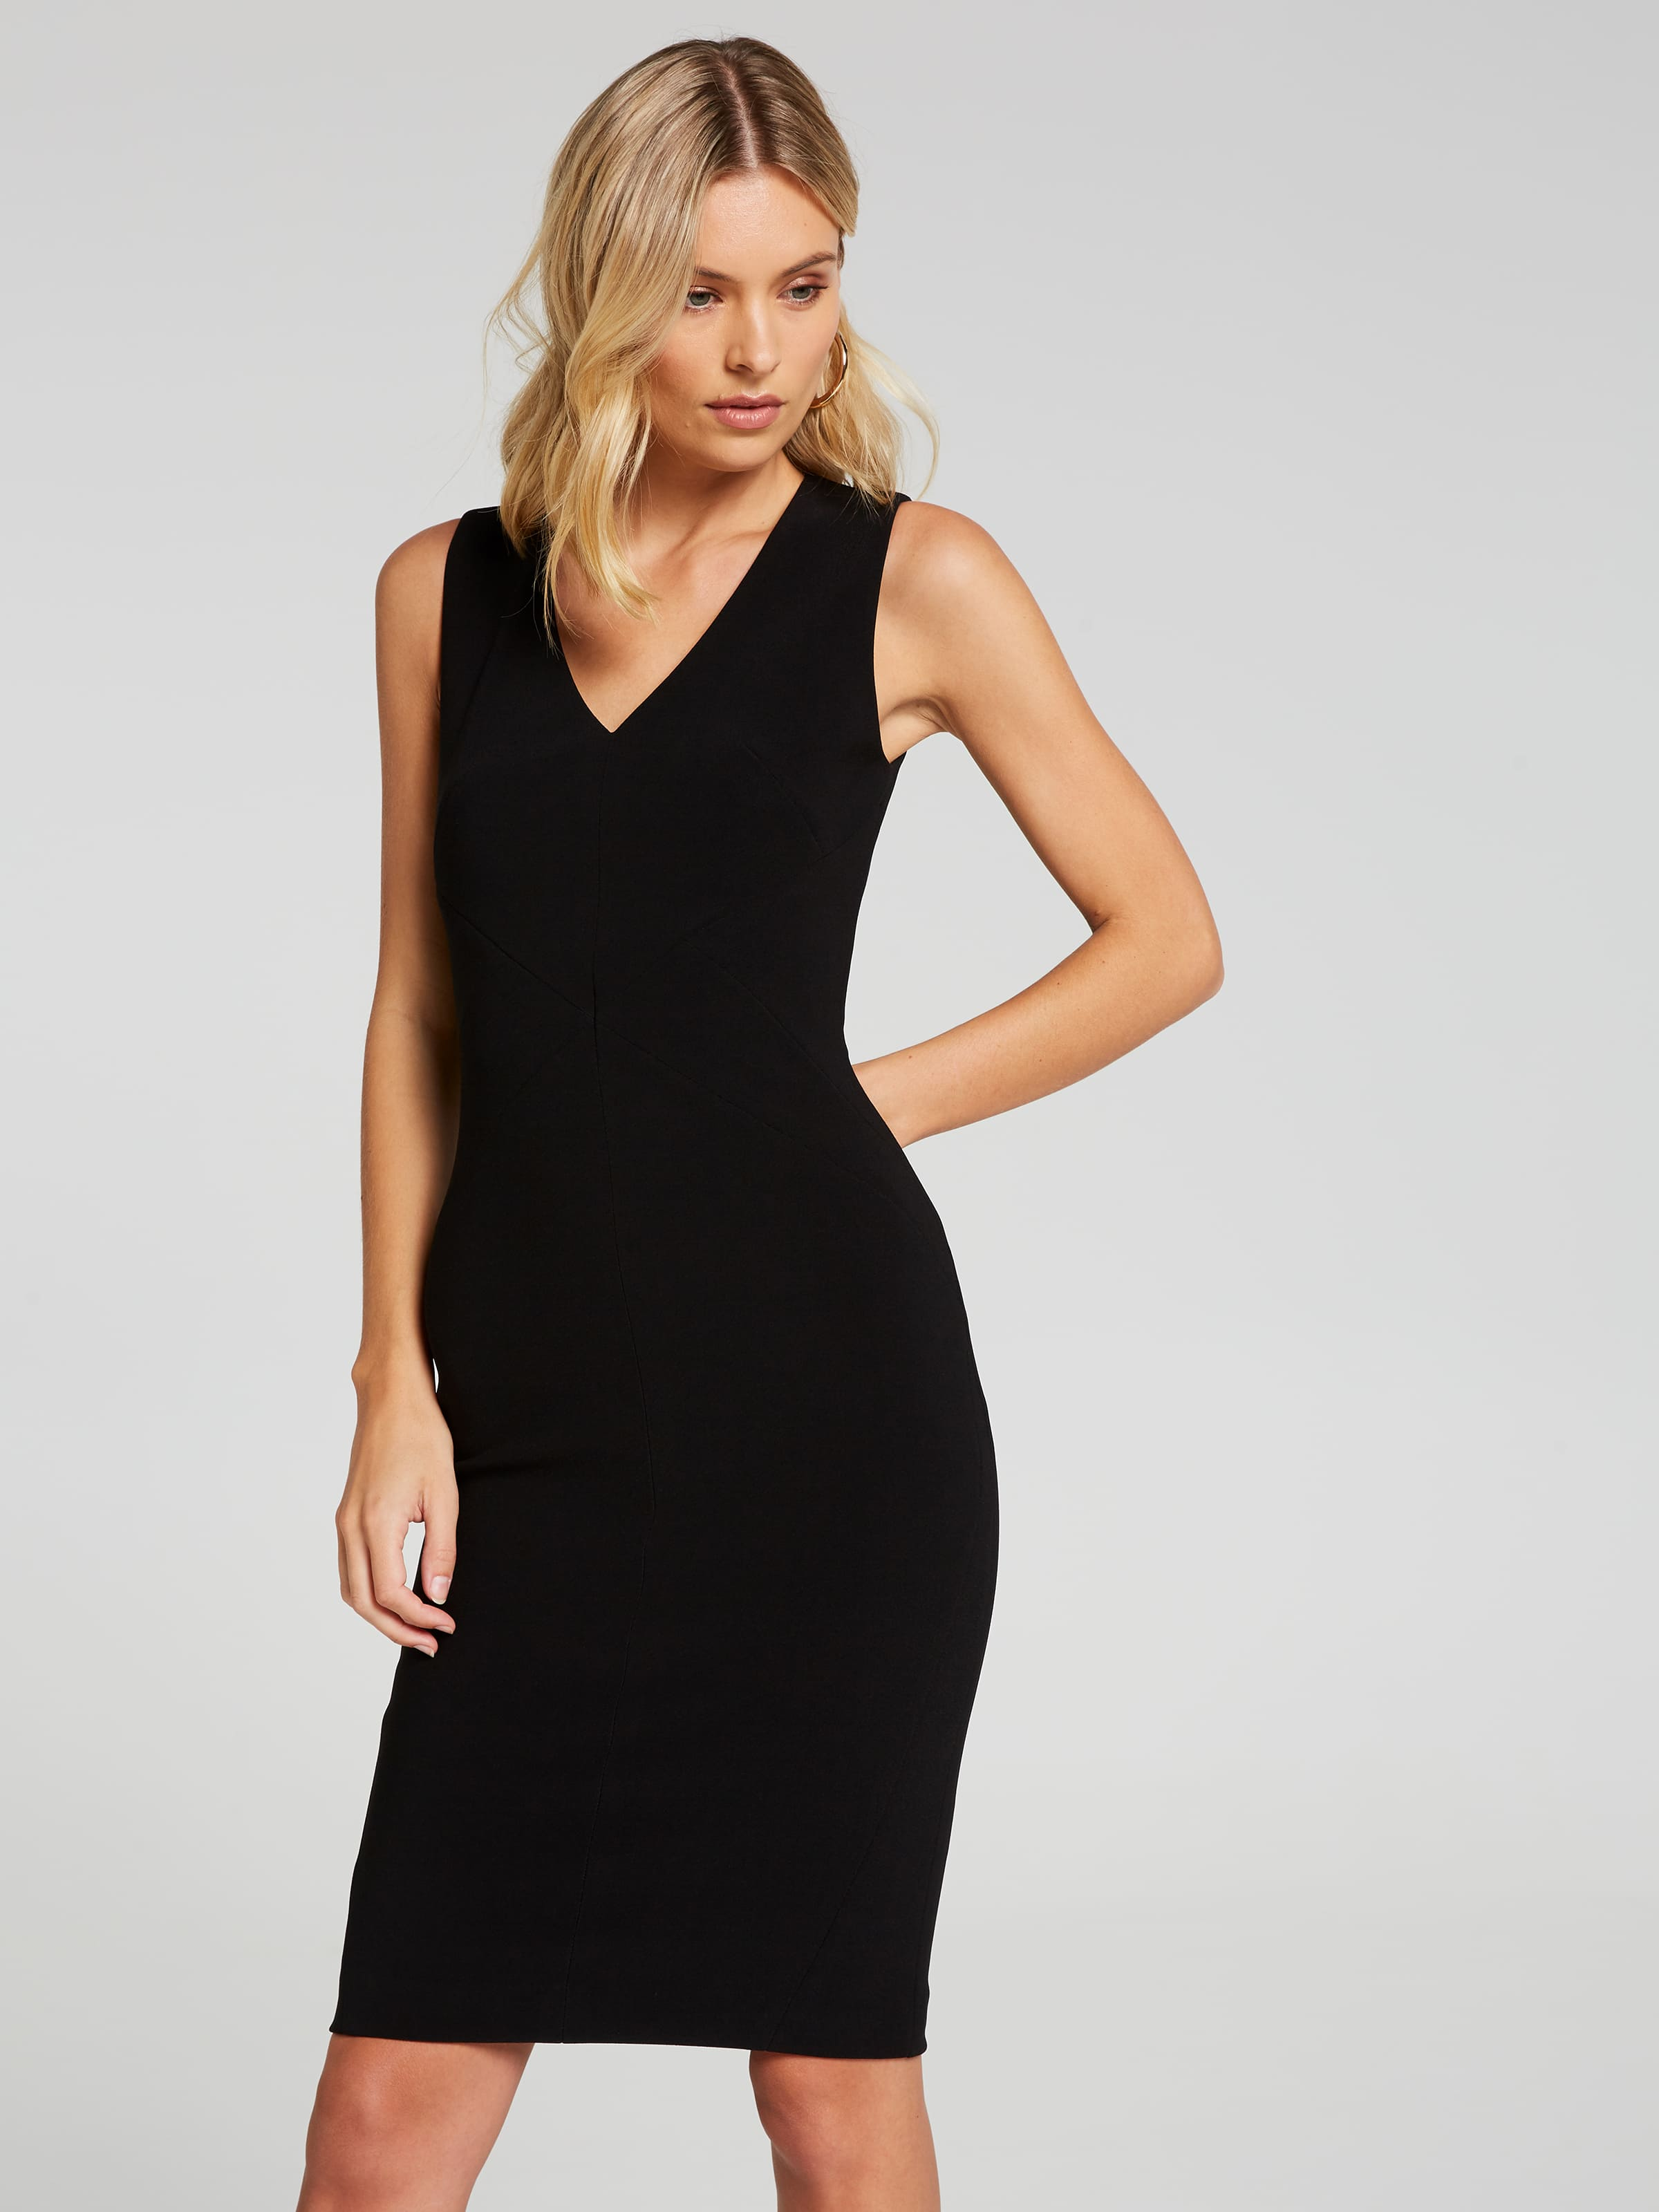 The Accolade City Dress